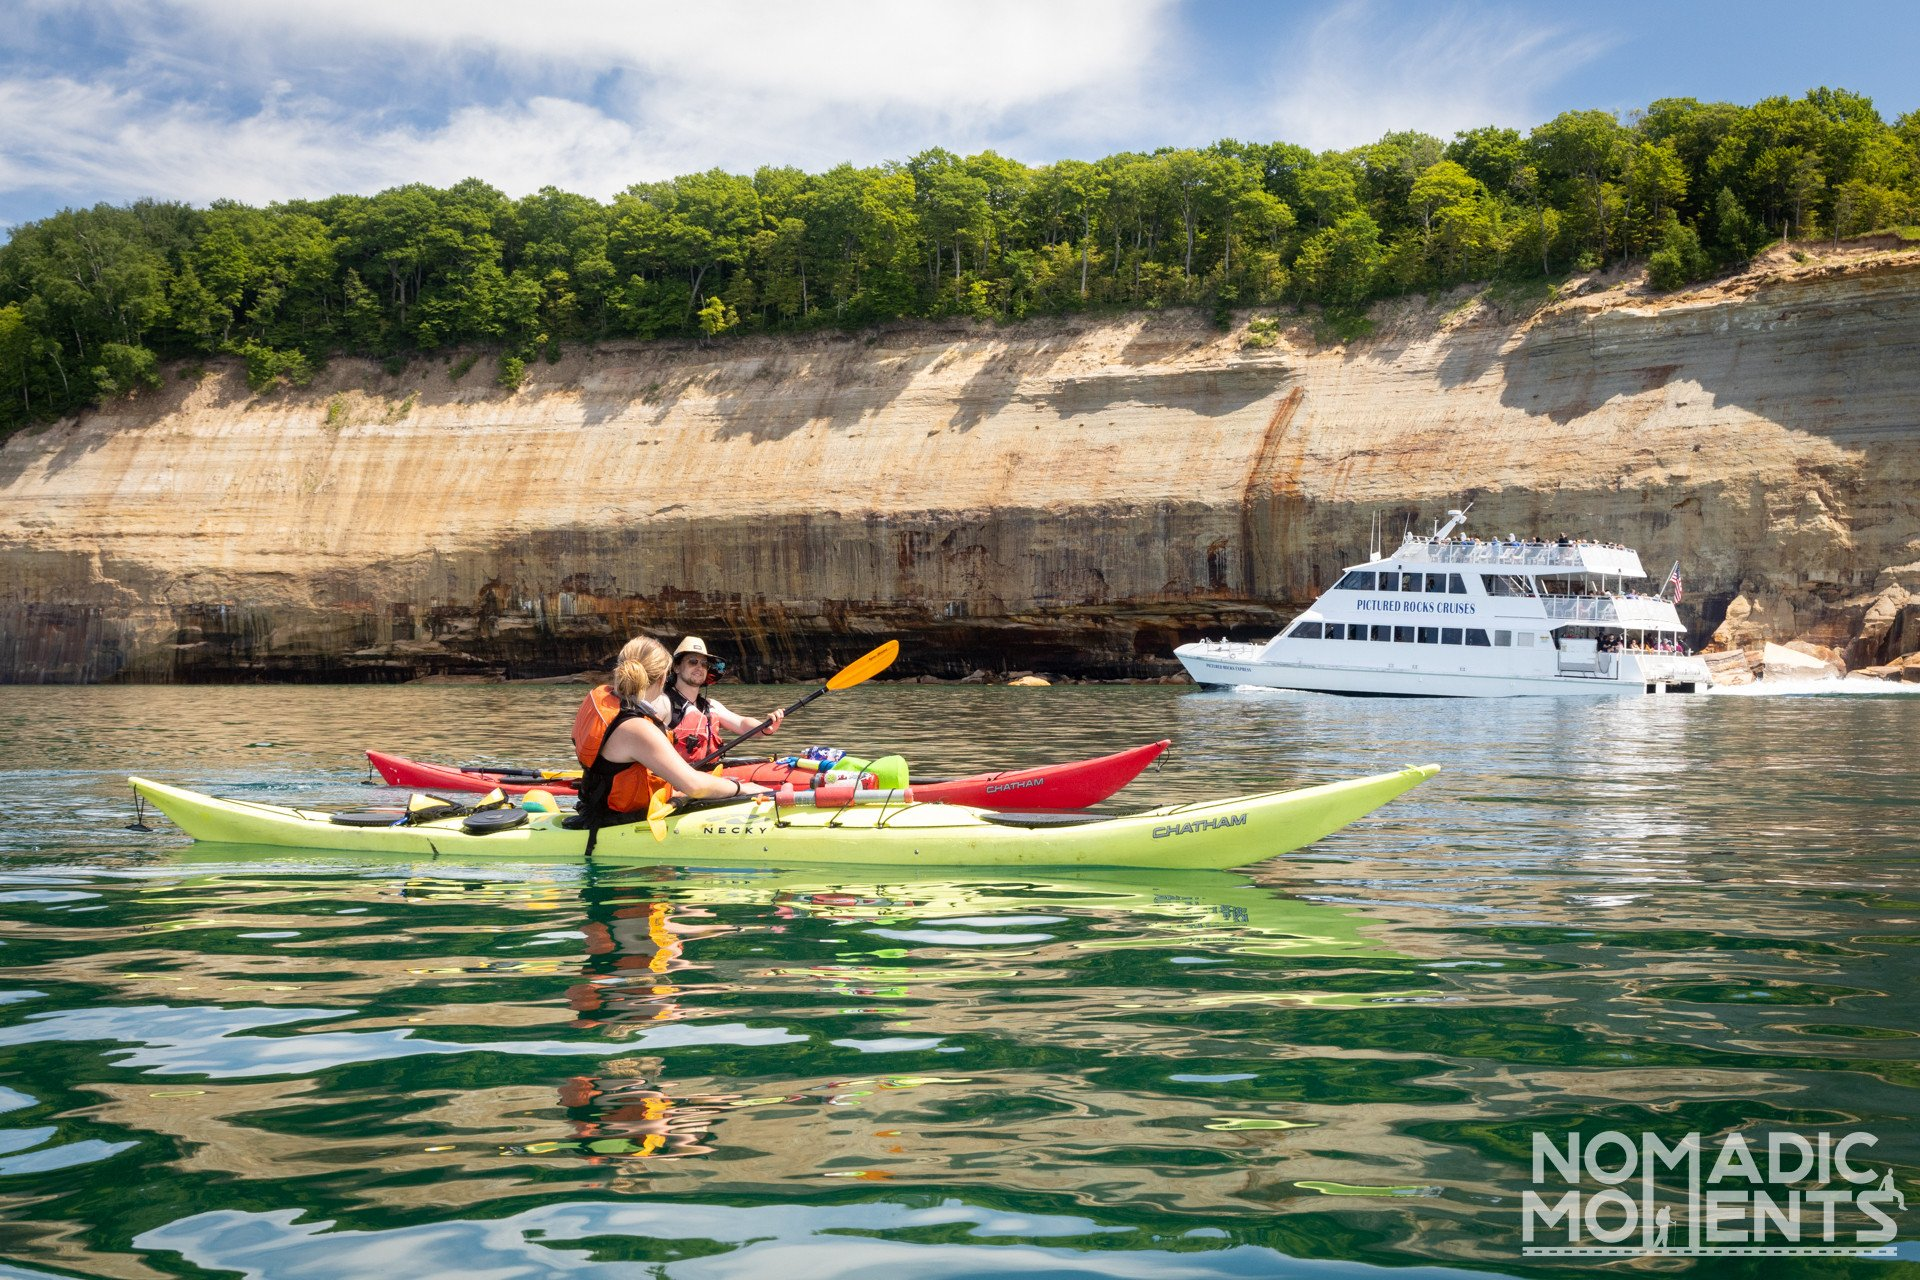 Pictured Rocks Boat Cruise and Kayak